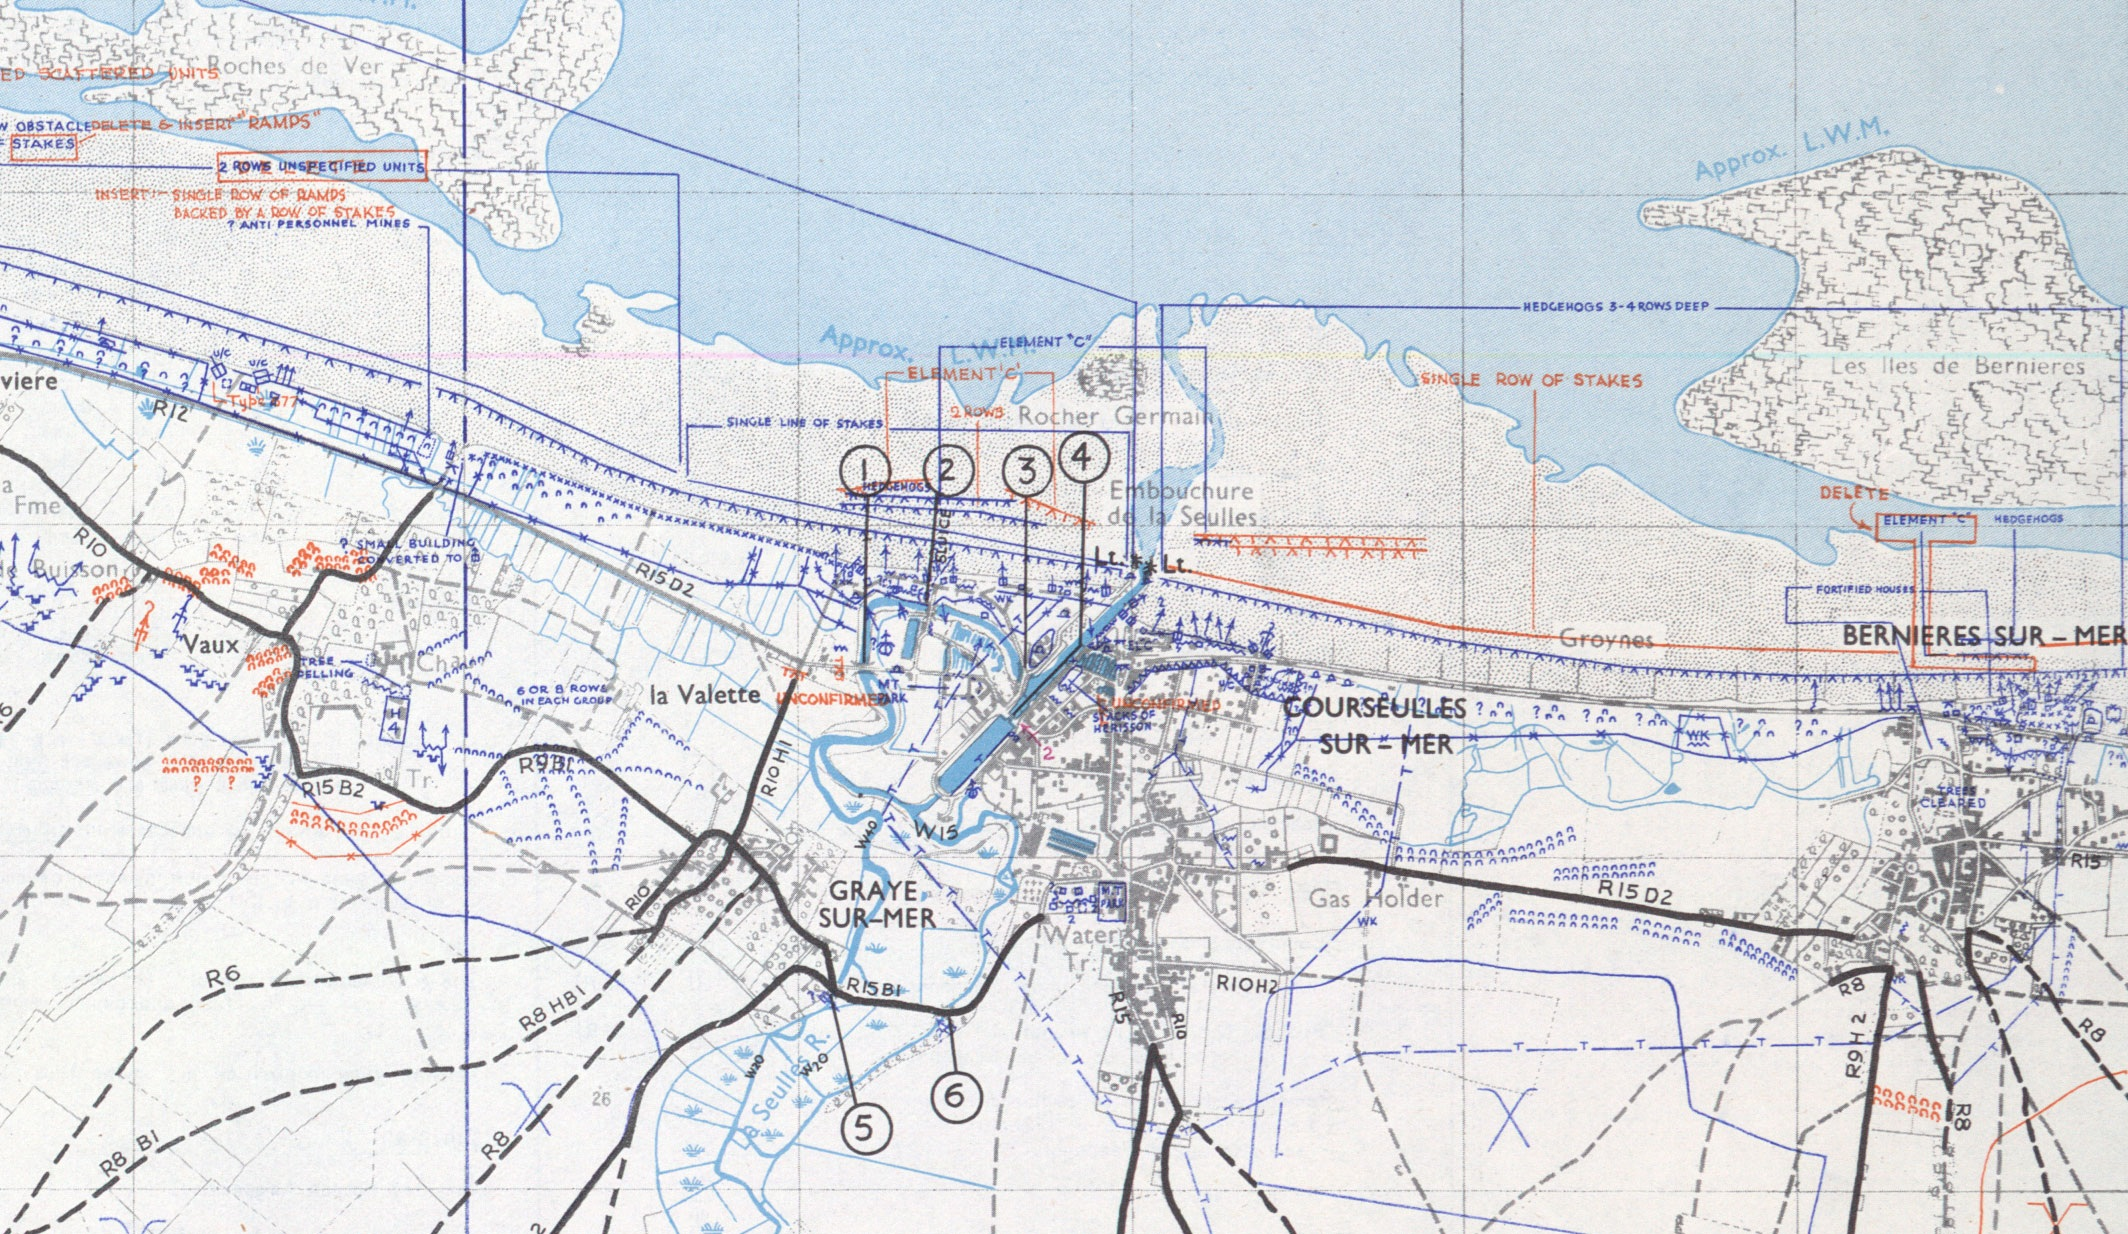 The Defences of Juno Beach. This 1:25,000 scale map shows the landing area of 3rd Canadian Infantry Division, and the intense machine guns, anti tank positions, bunkers and trenches the Canadians had to fight through.